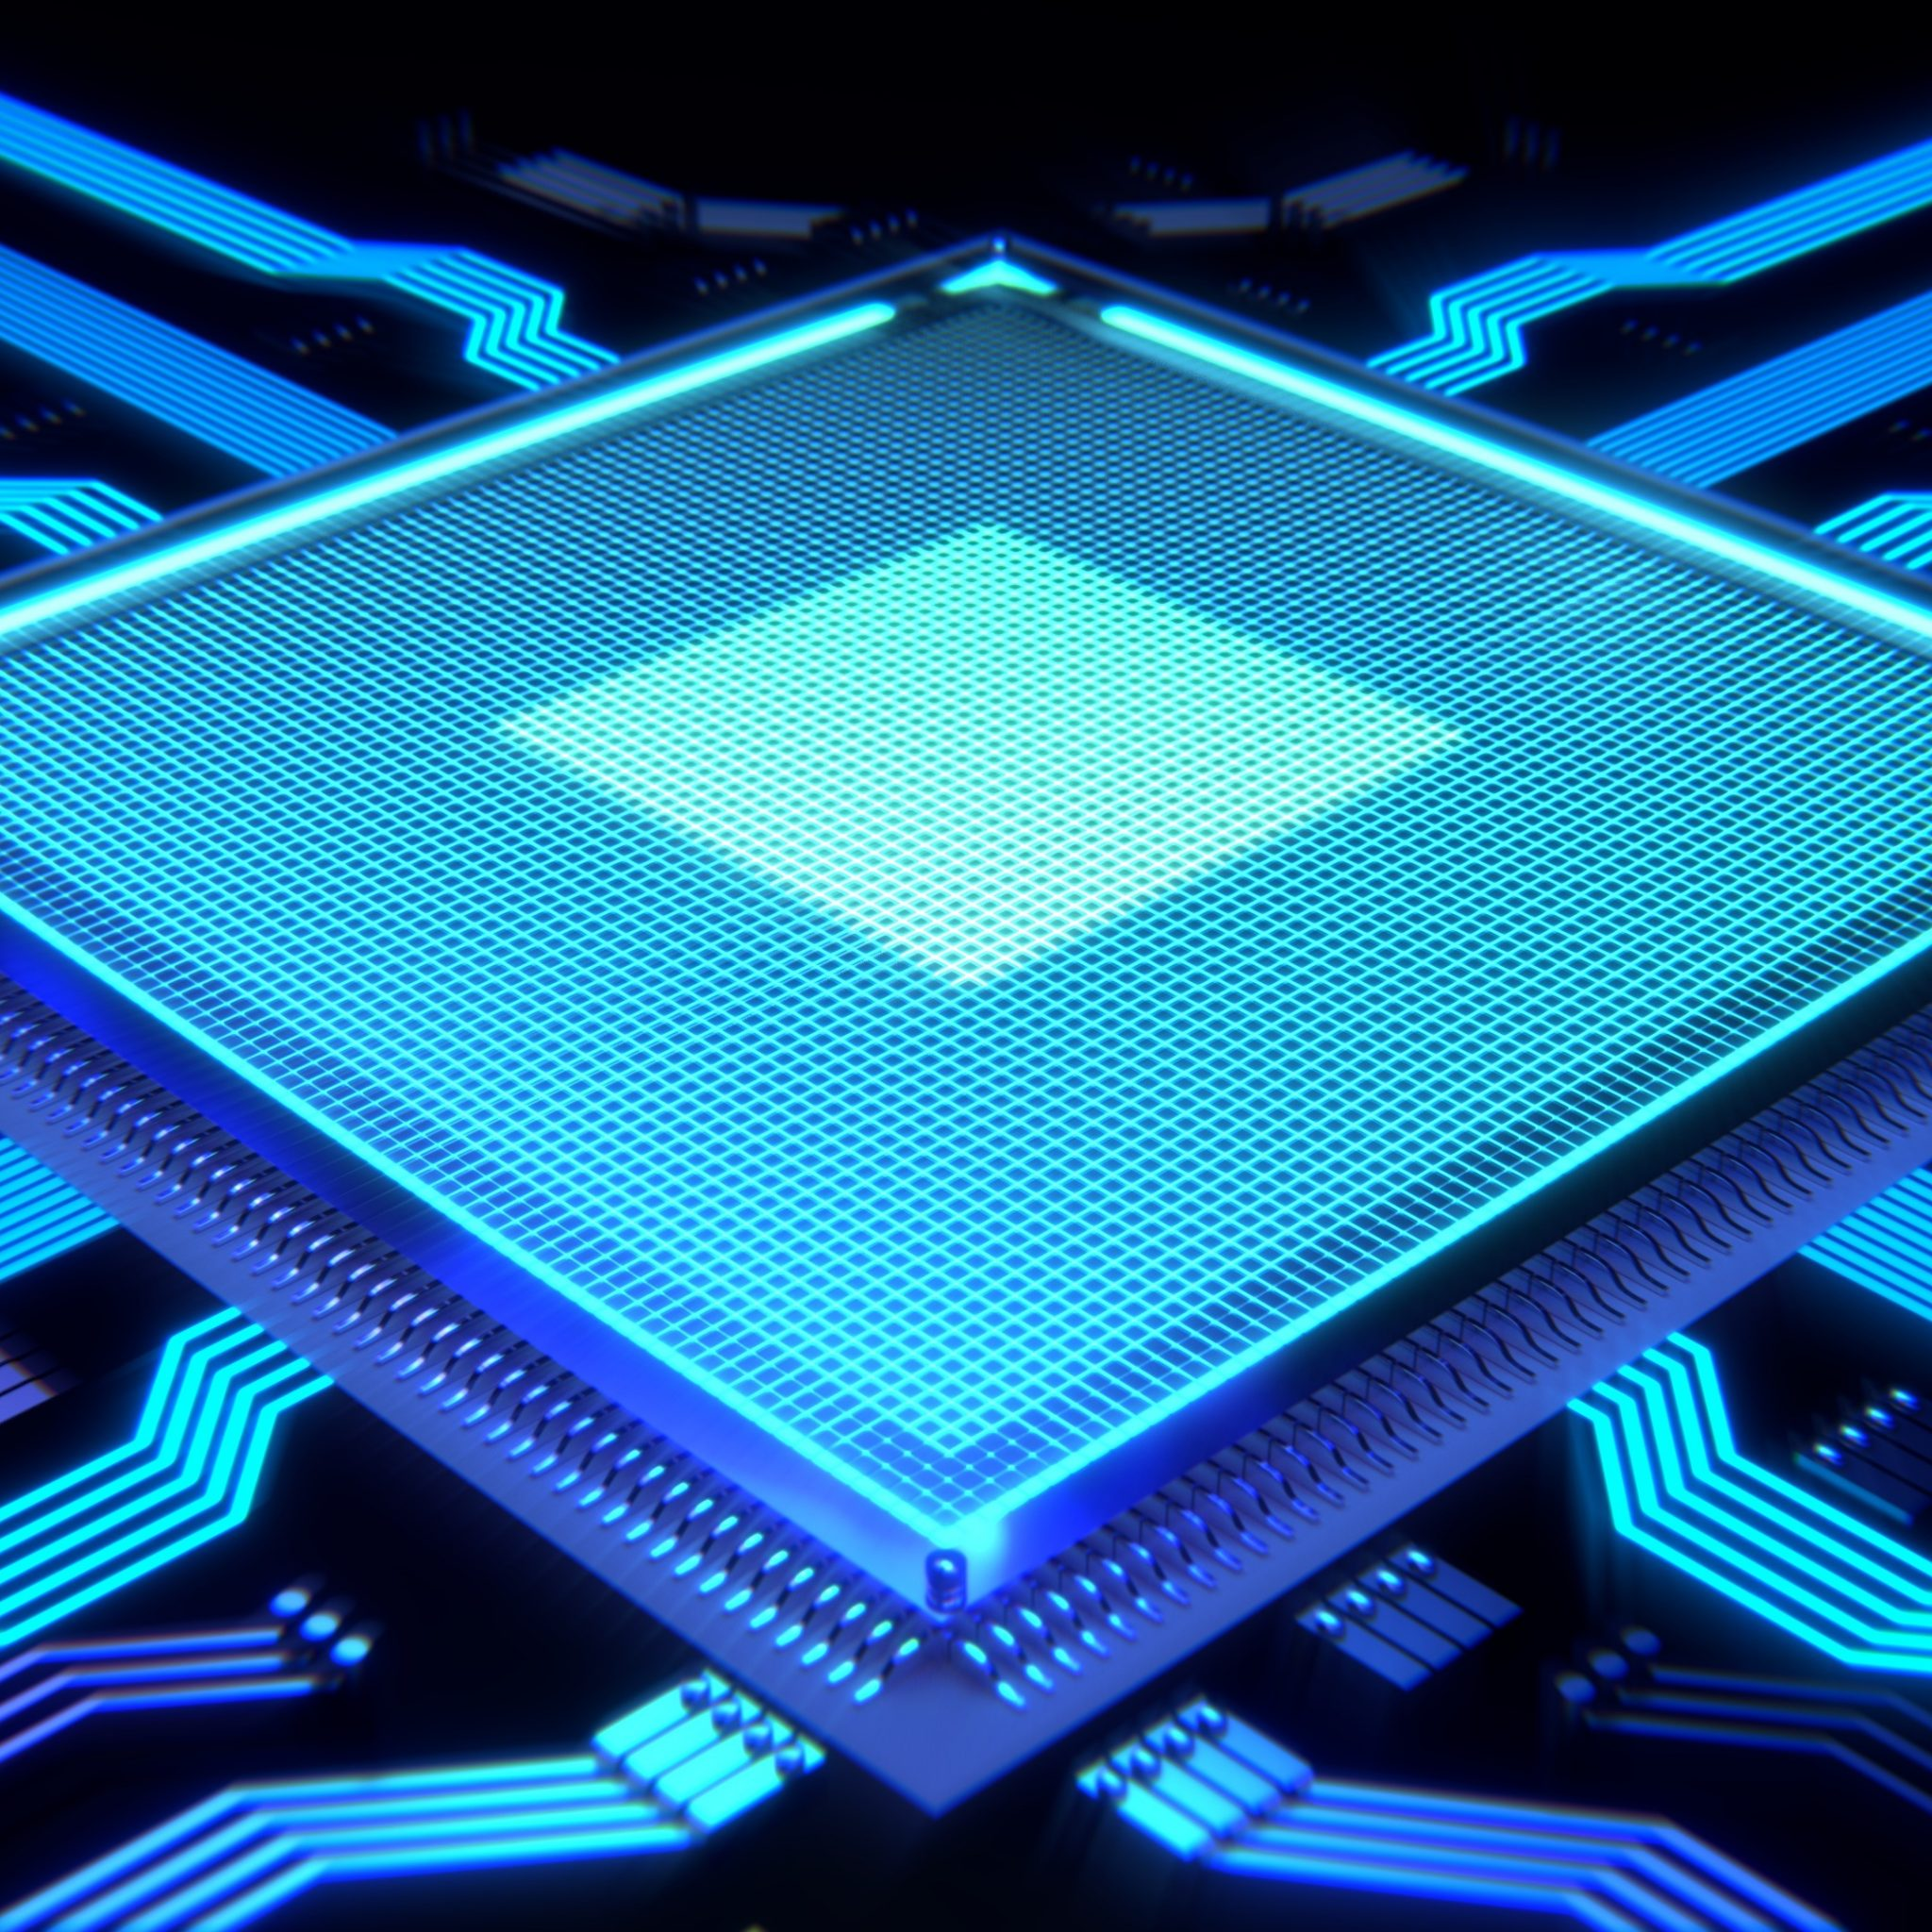 3D Processor Technology 4K UHD Wallpaper